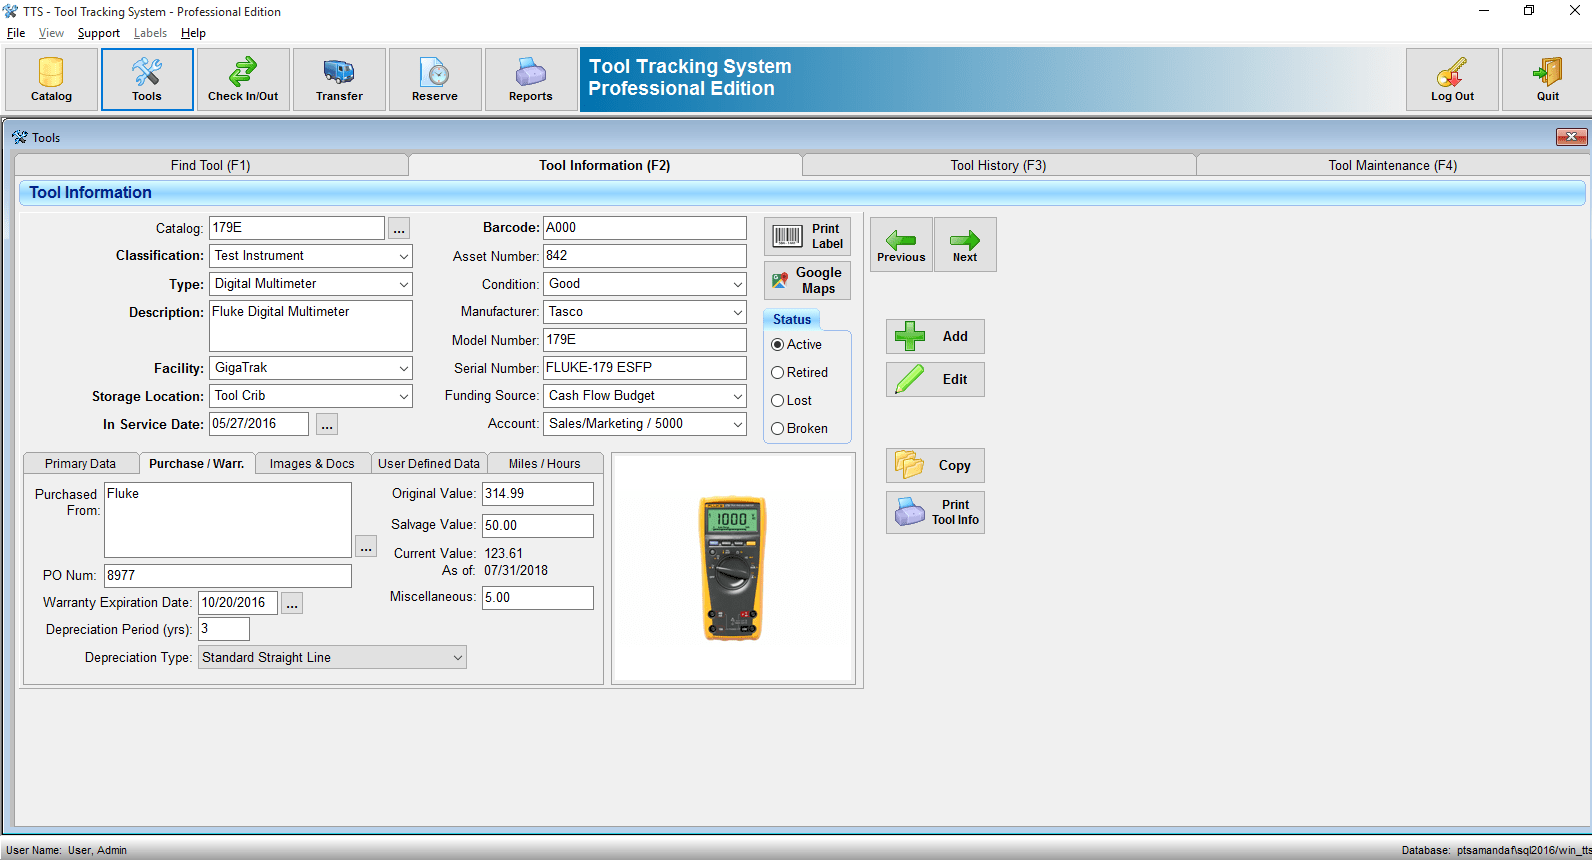 Freeware Banking Software Tool Tracking System Equipment Asset Tracking Software